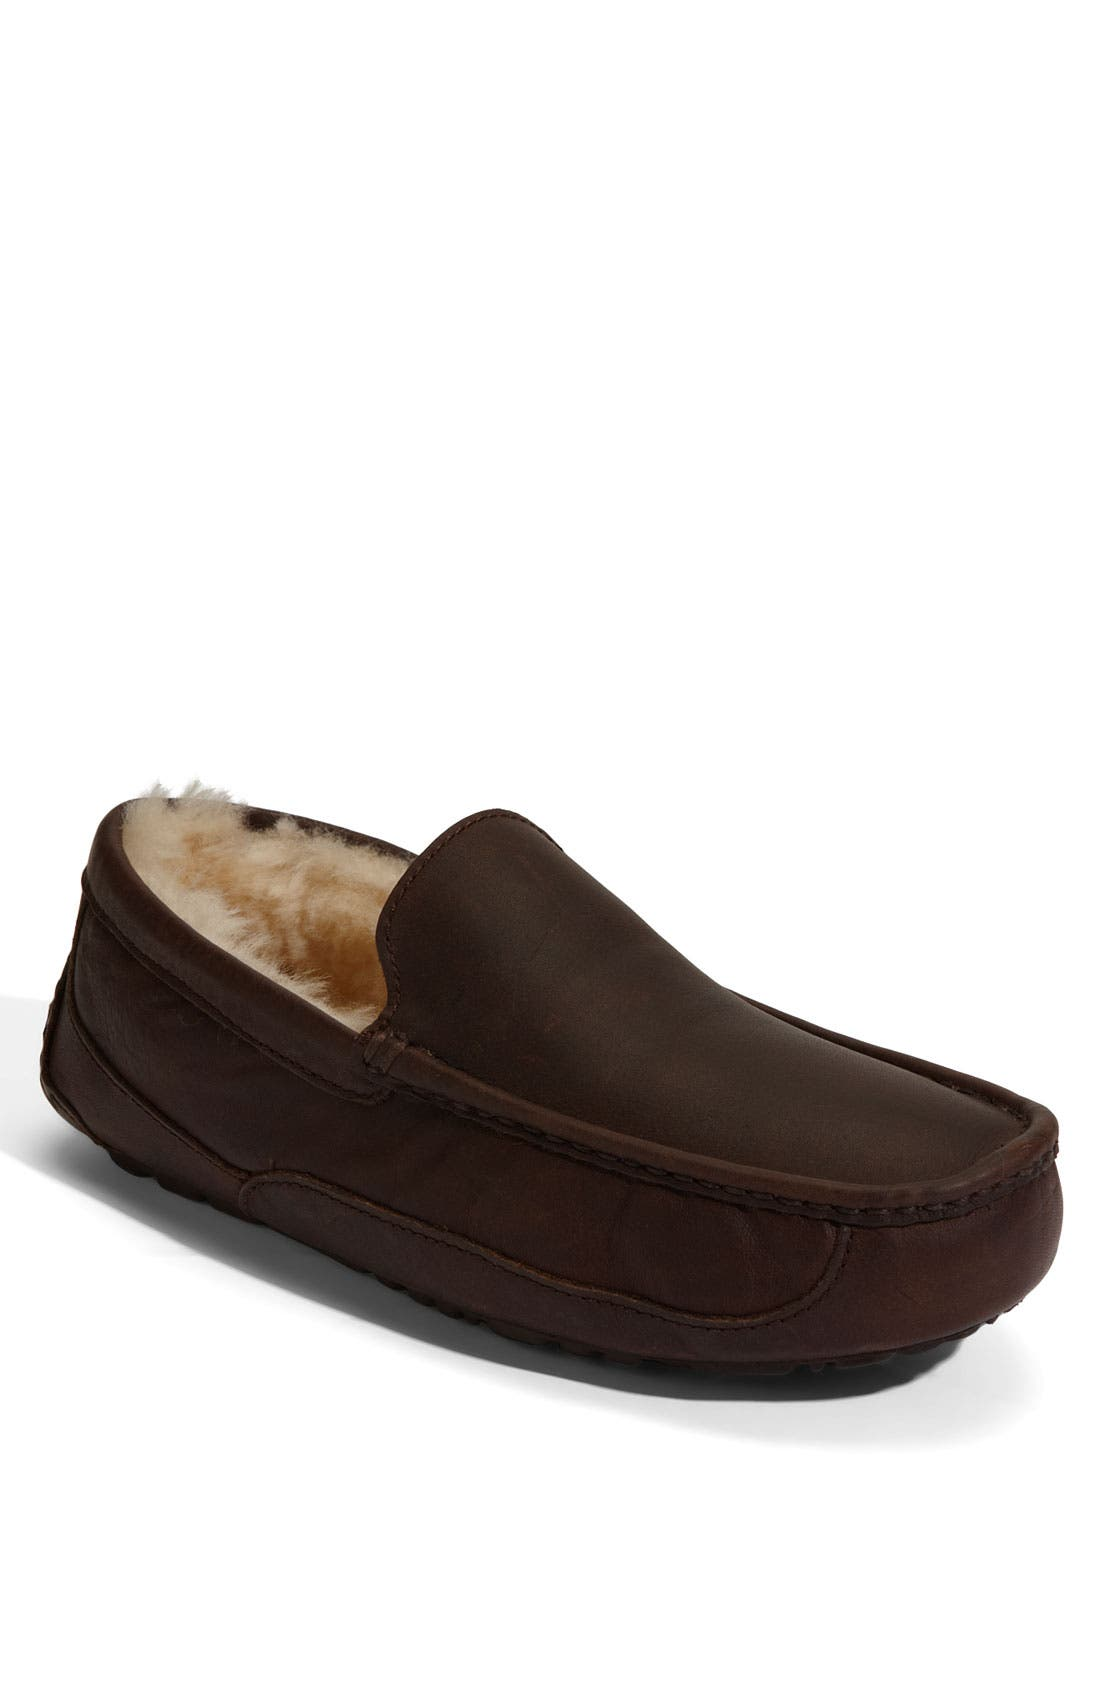 4475d63d5ad Men'S Ascot Water-Resistant Leather Slippers in Buck